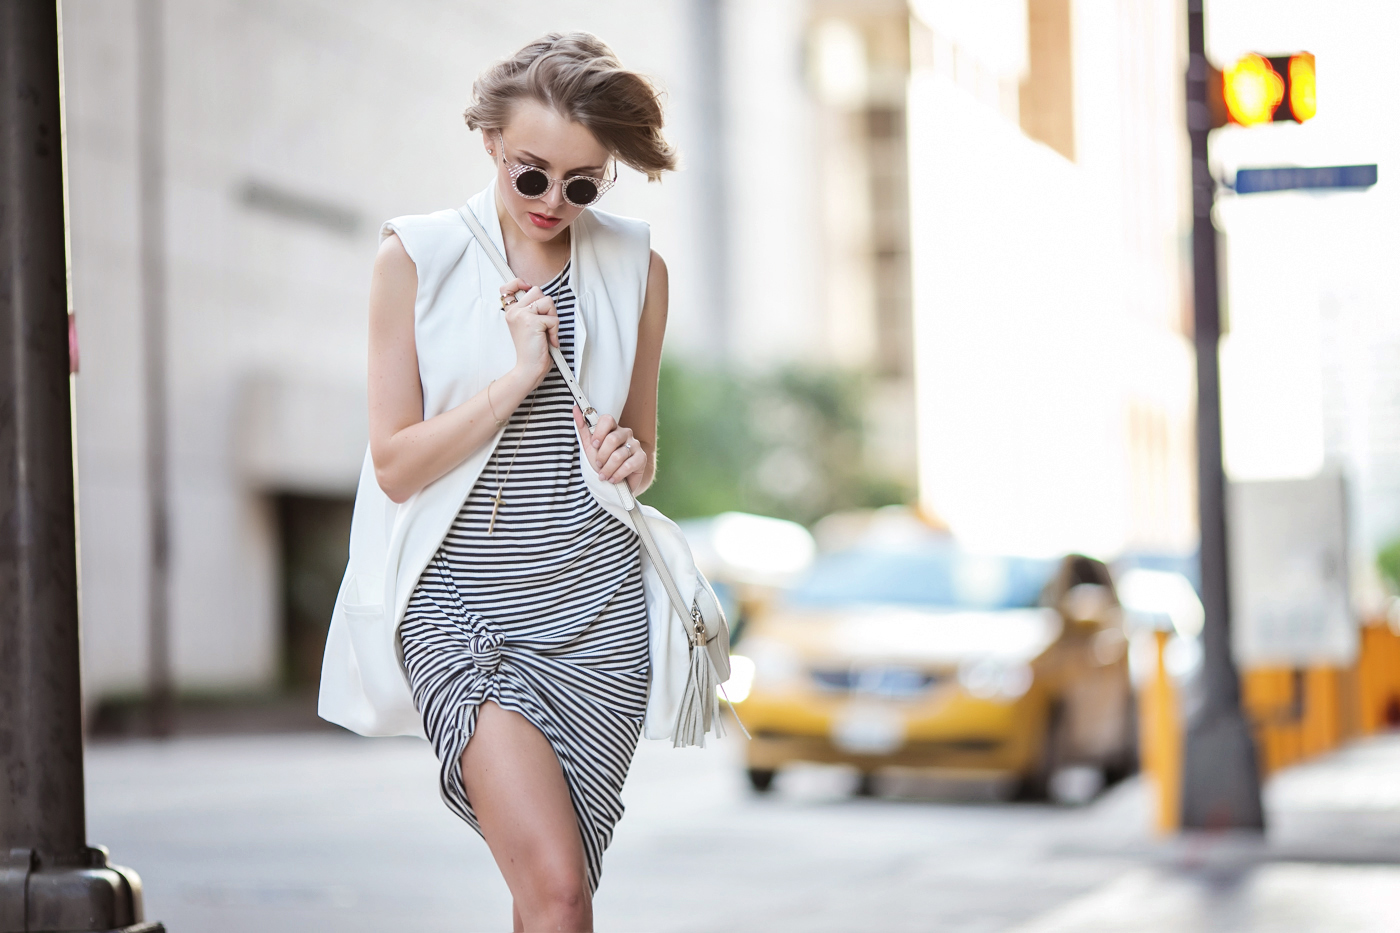 darya kamalova a fashion blogger from thecablook is wearing zara striped long dress with white sleeveless jacket and gucci disco soho bag in white leather-11